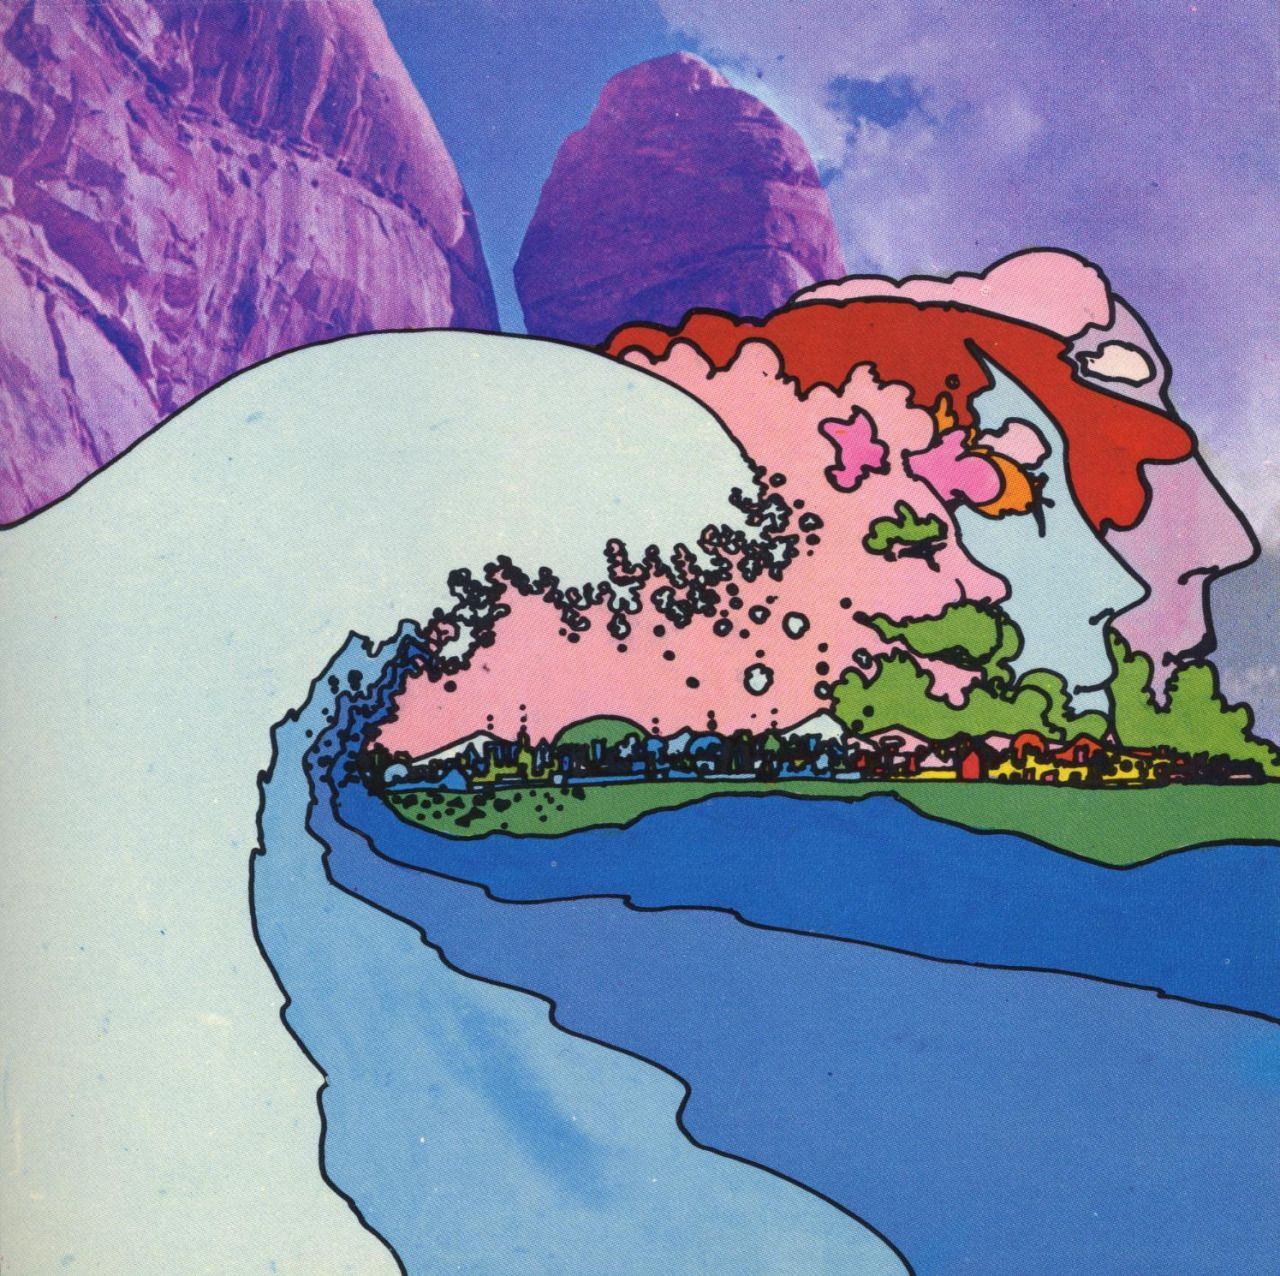 Peter Max / Thought, 1970